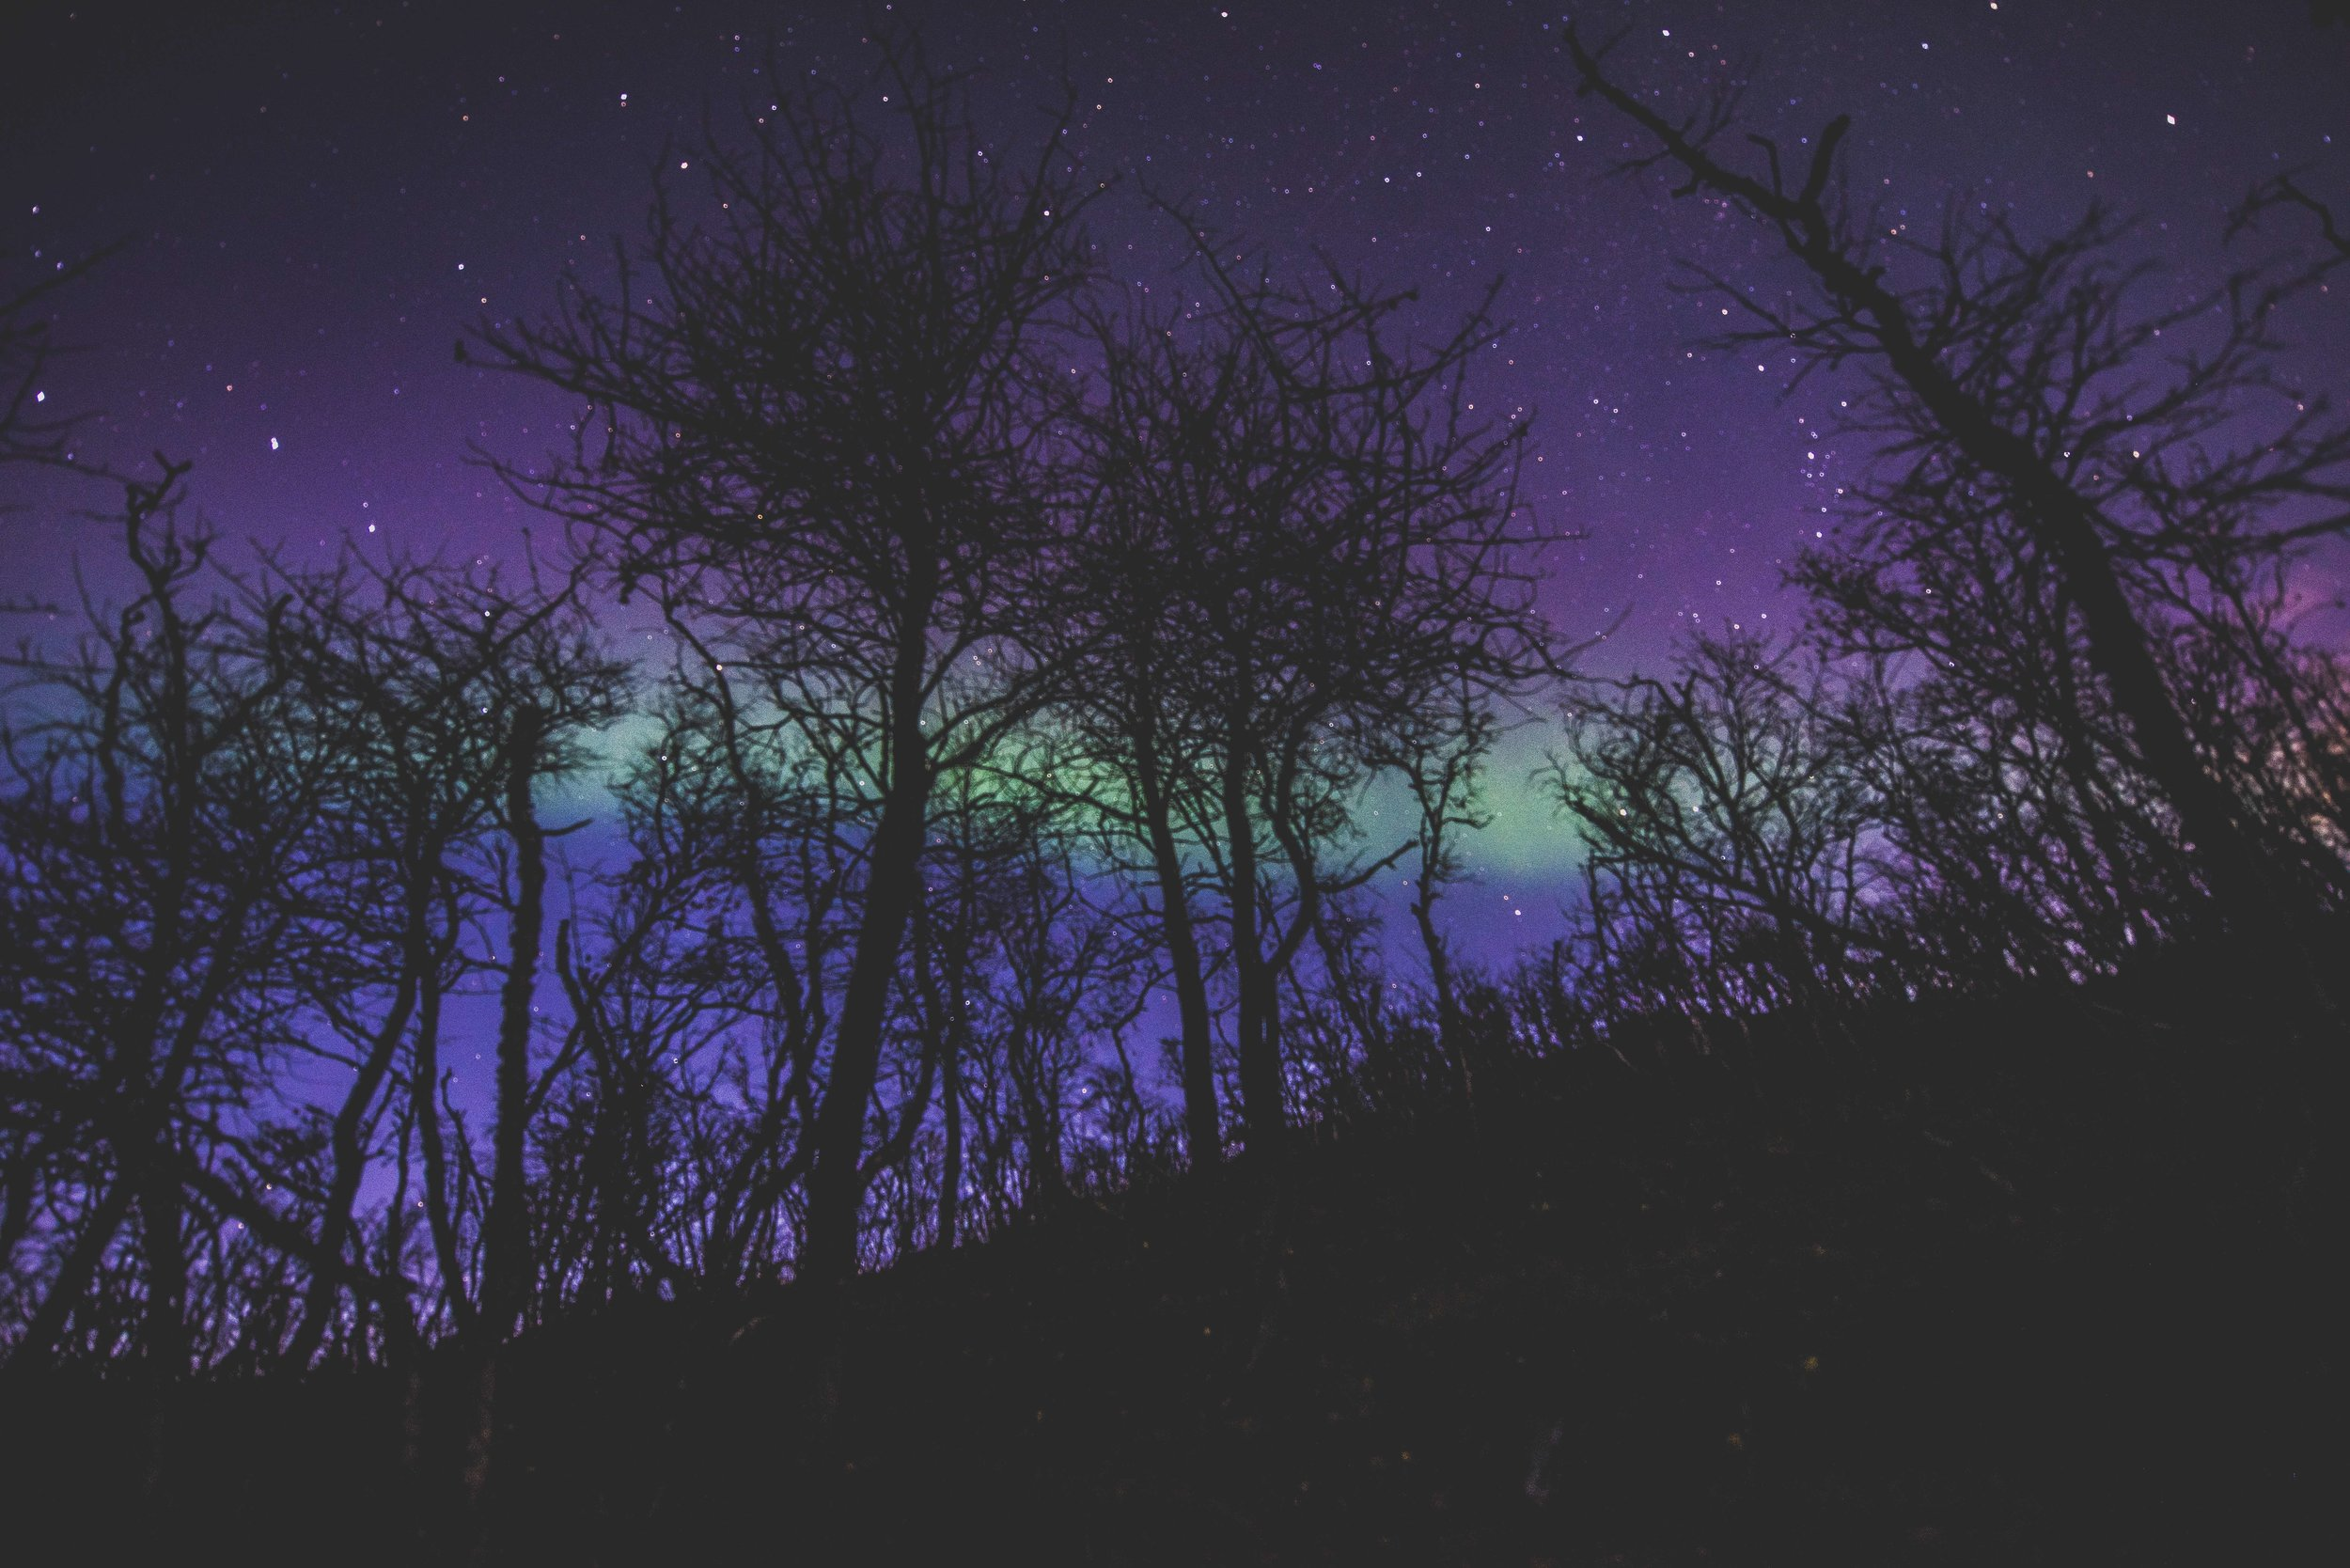 Trees in foreground northern lights long exposure